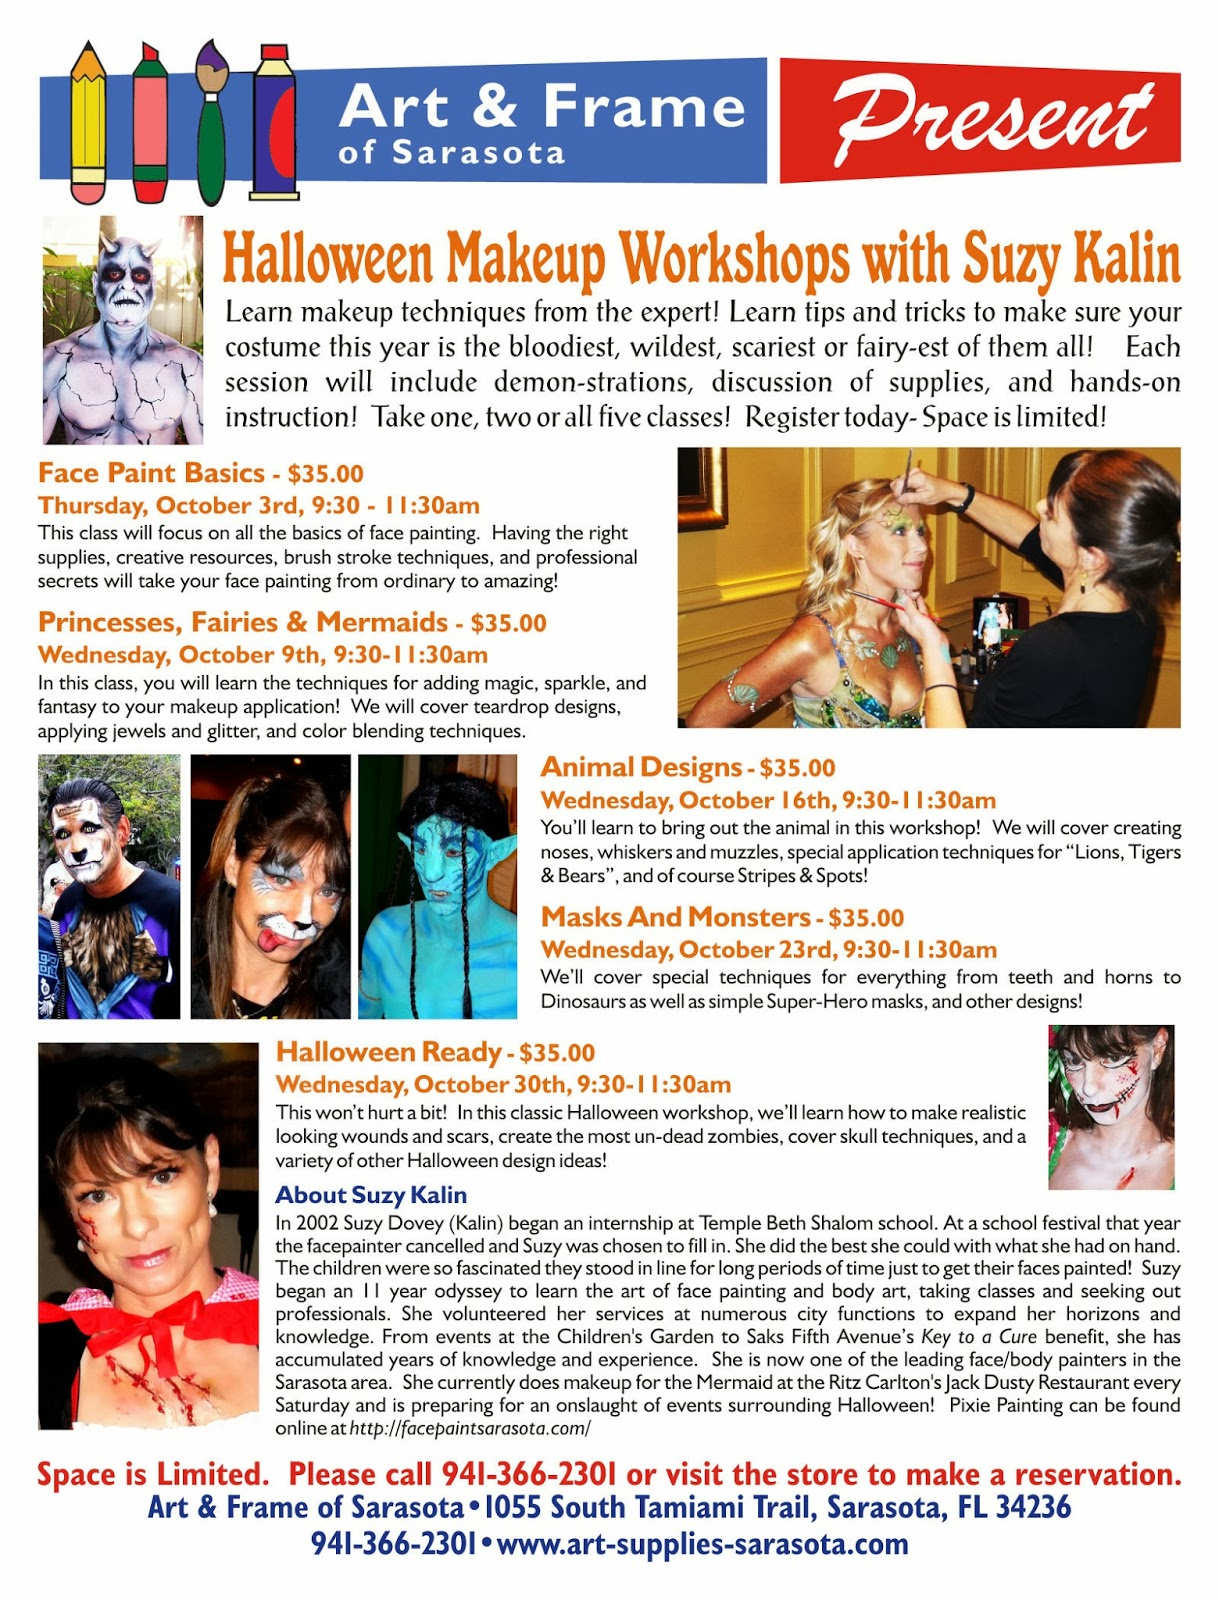 Art & Frame of Sarasota: Halloween Makeup Workshop